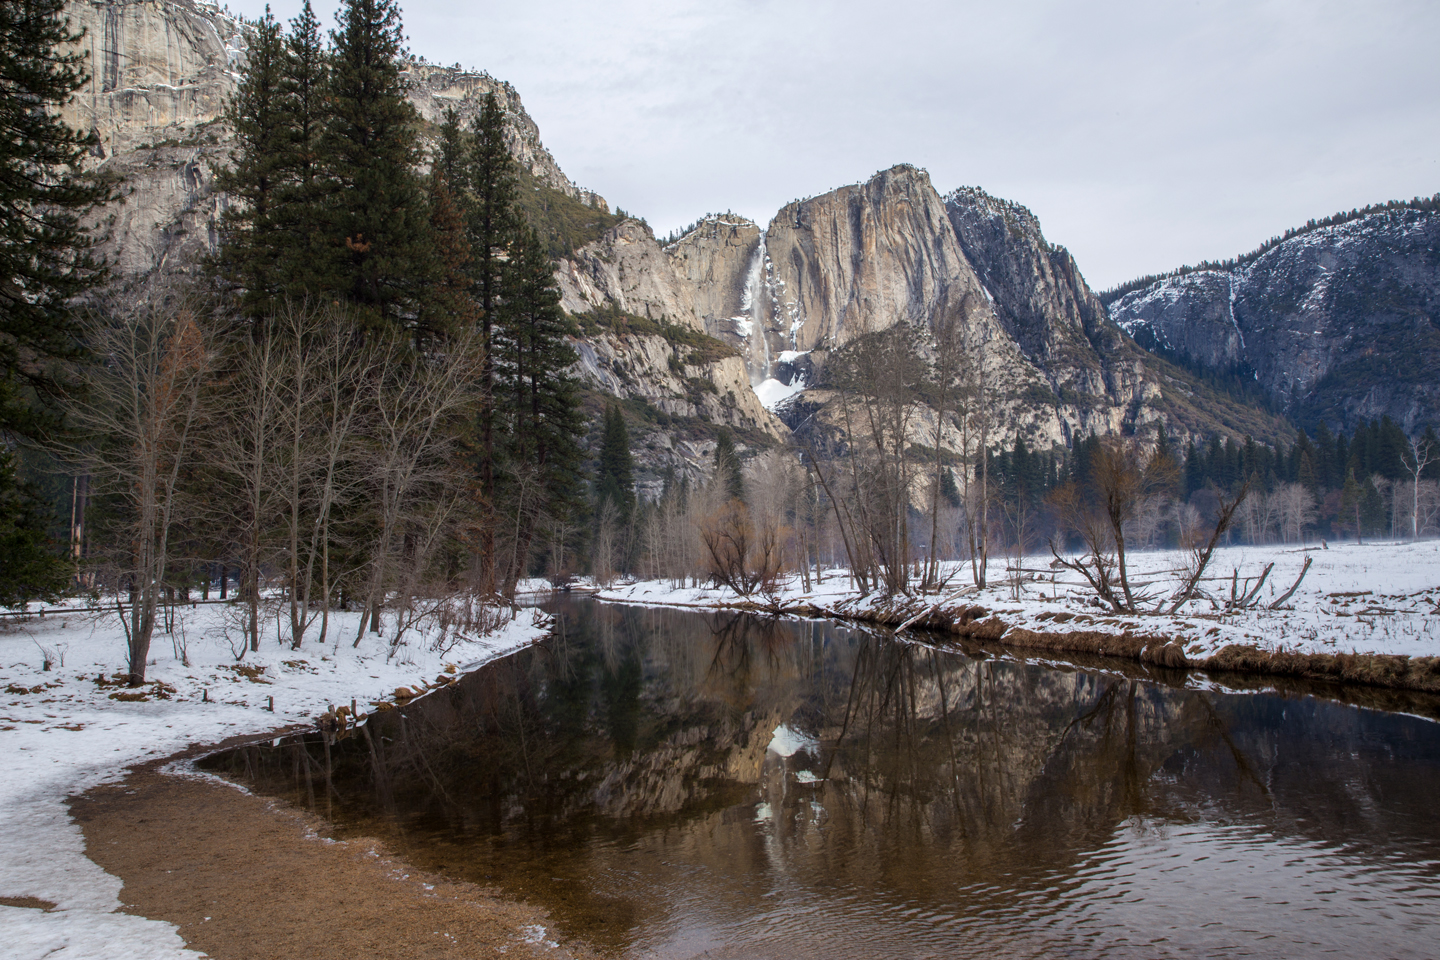 yosemite-falls-sinrise-winter.jpg